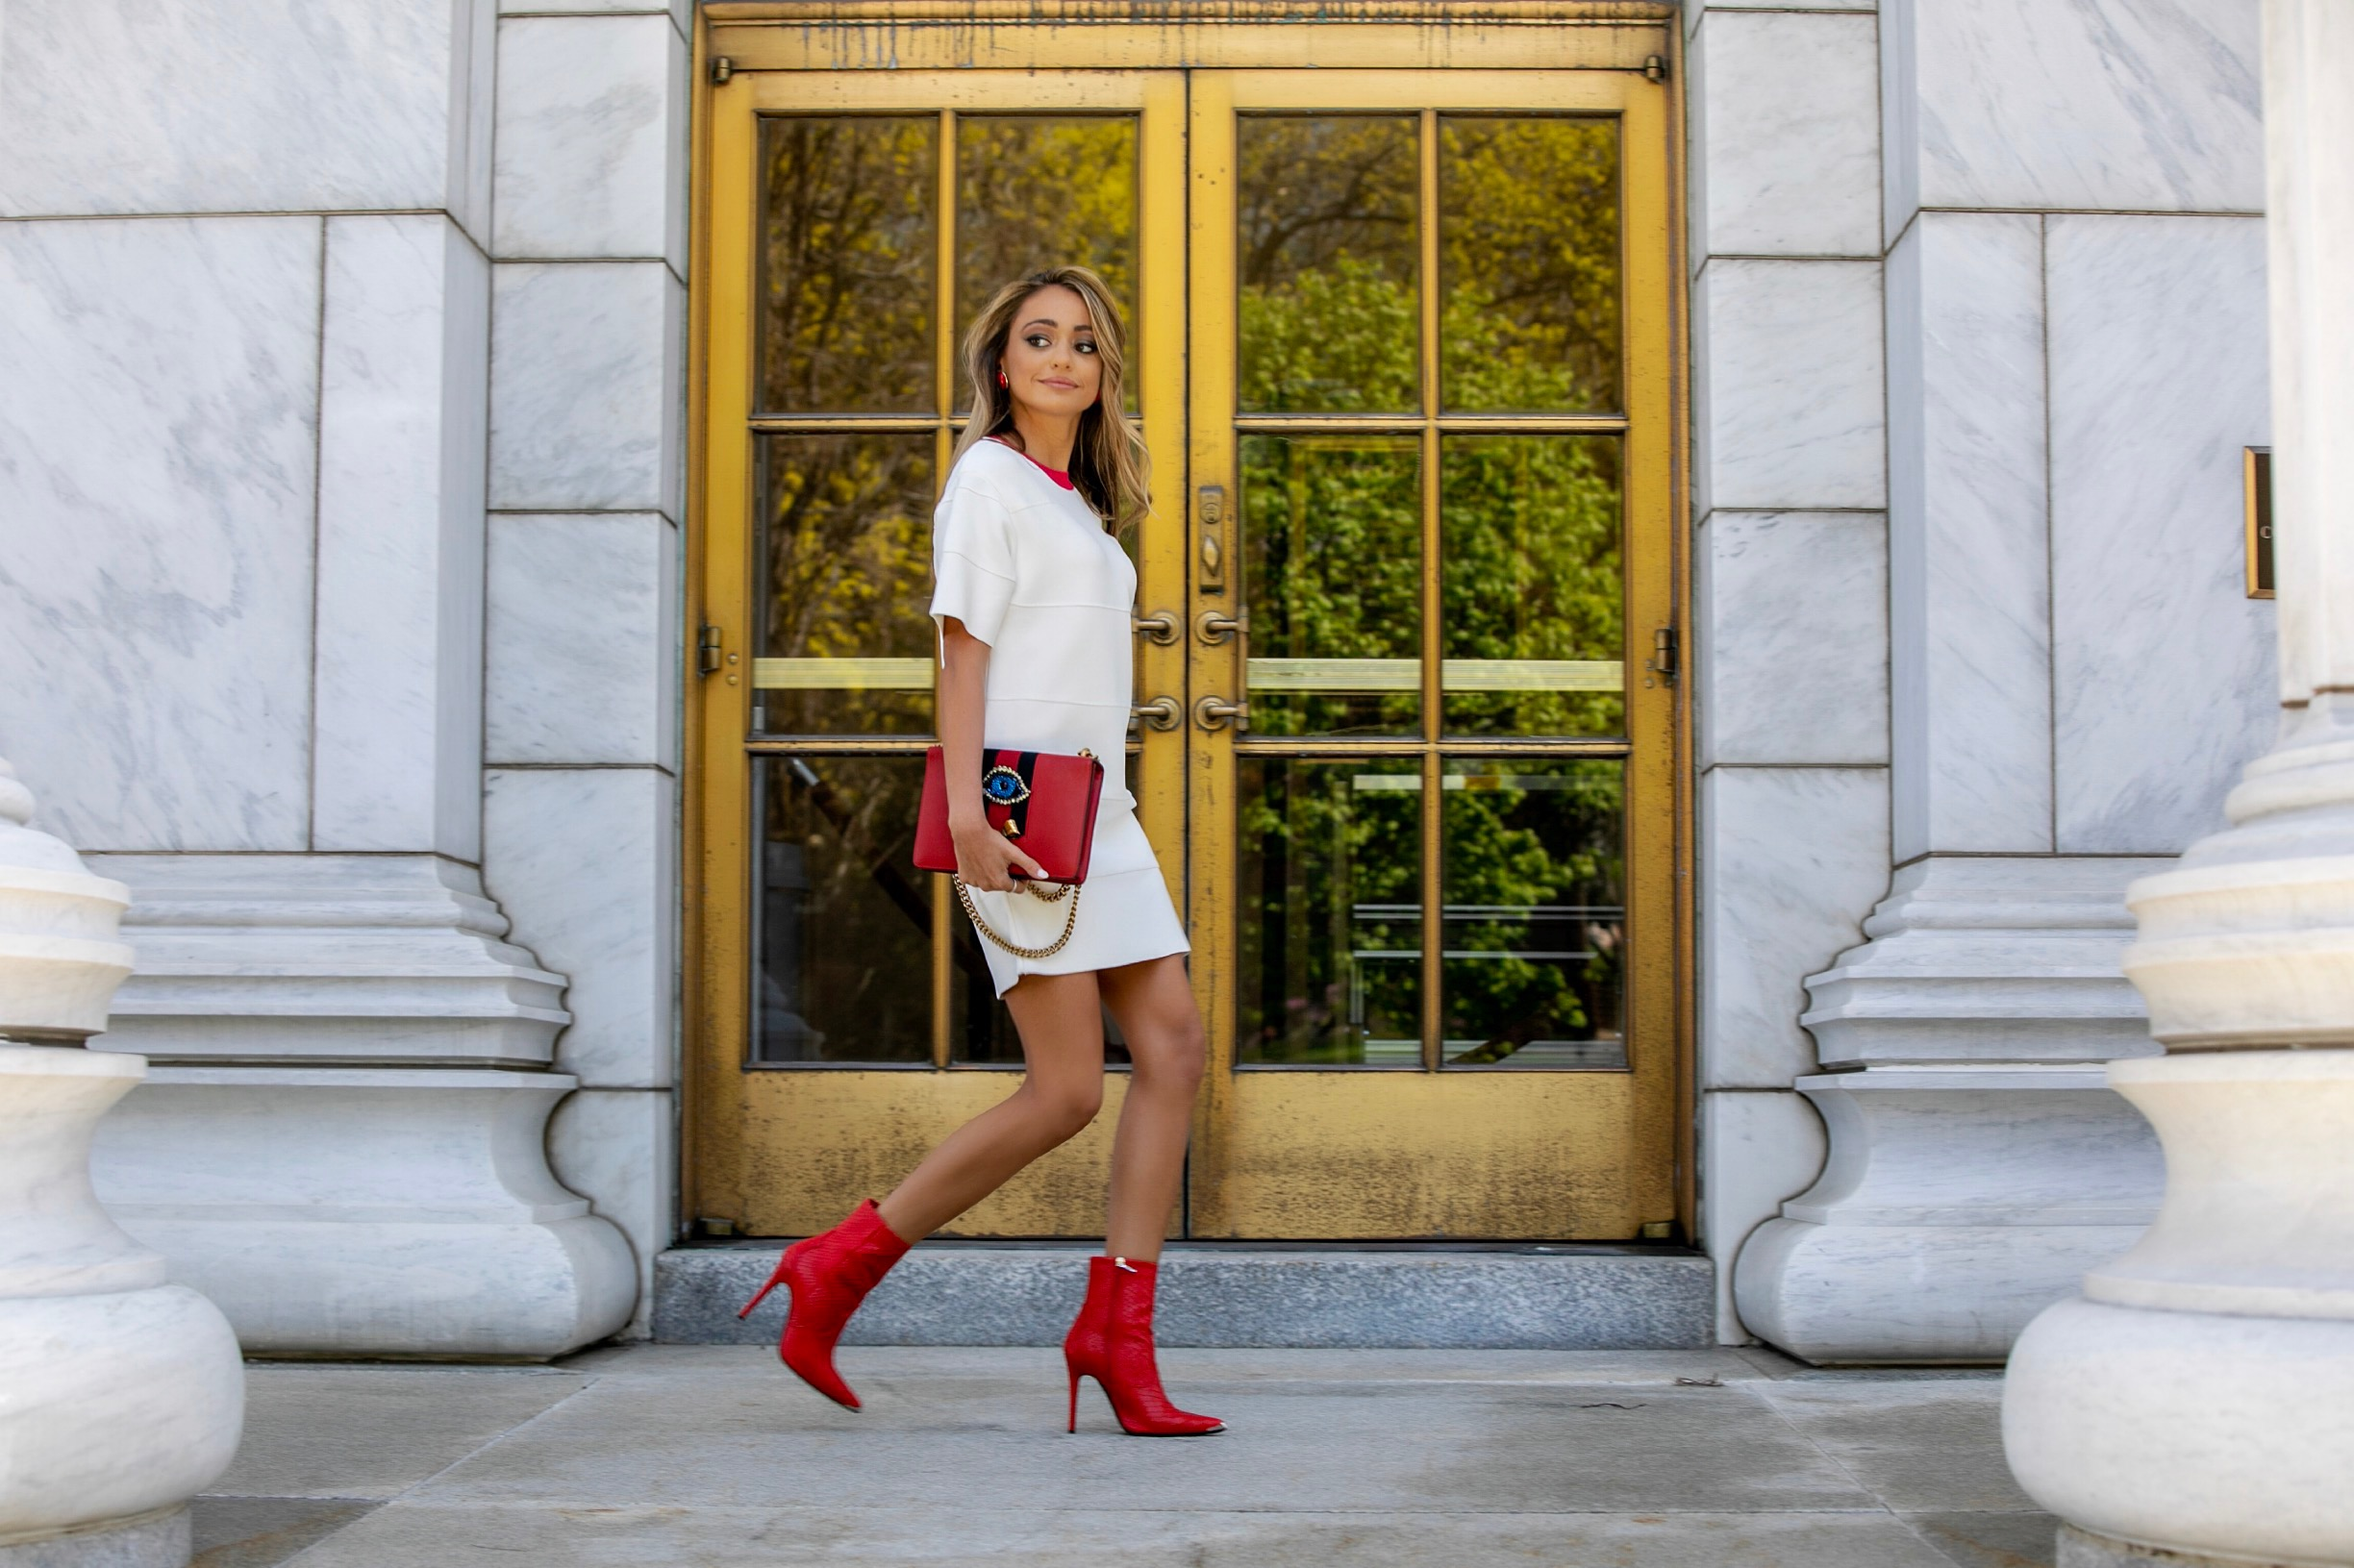 streetstyle by Lauren Recchia in Herve Leger, Gucci, and Amiri